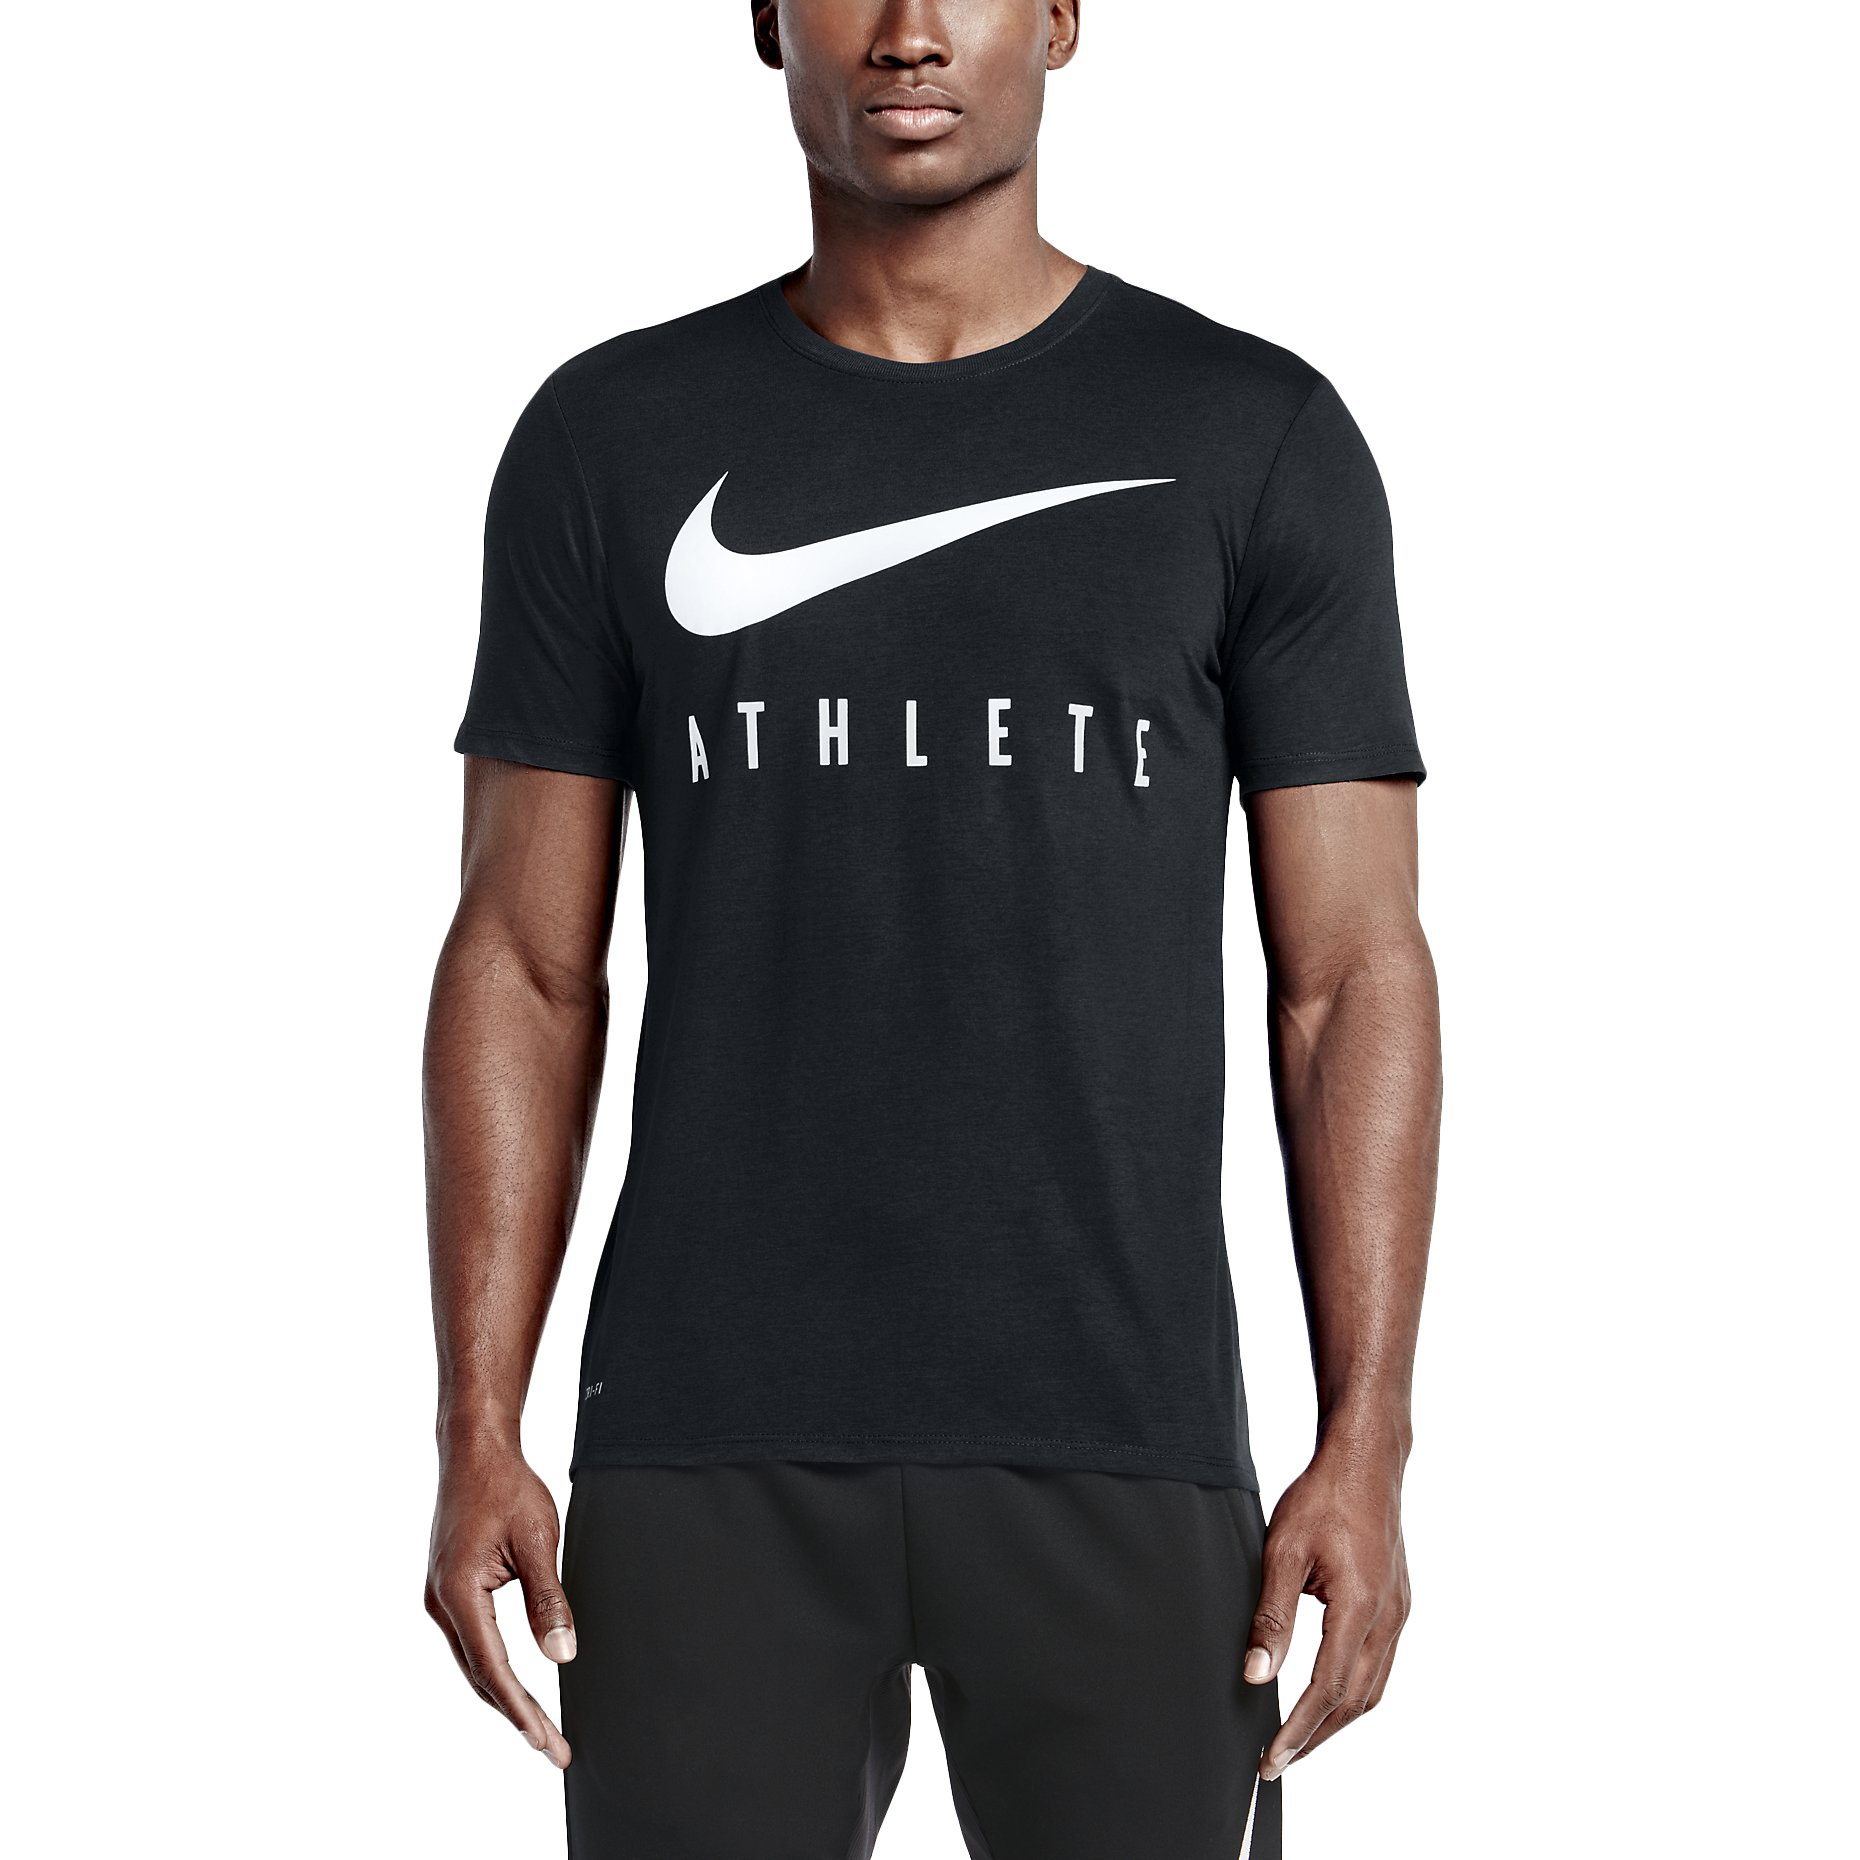 1200ed82d5cde Nike Swoosh T Shirt 3xl – Rockwall Auction